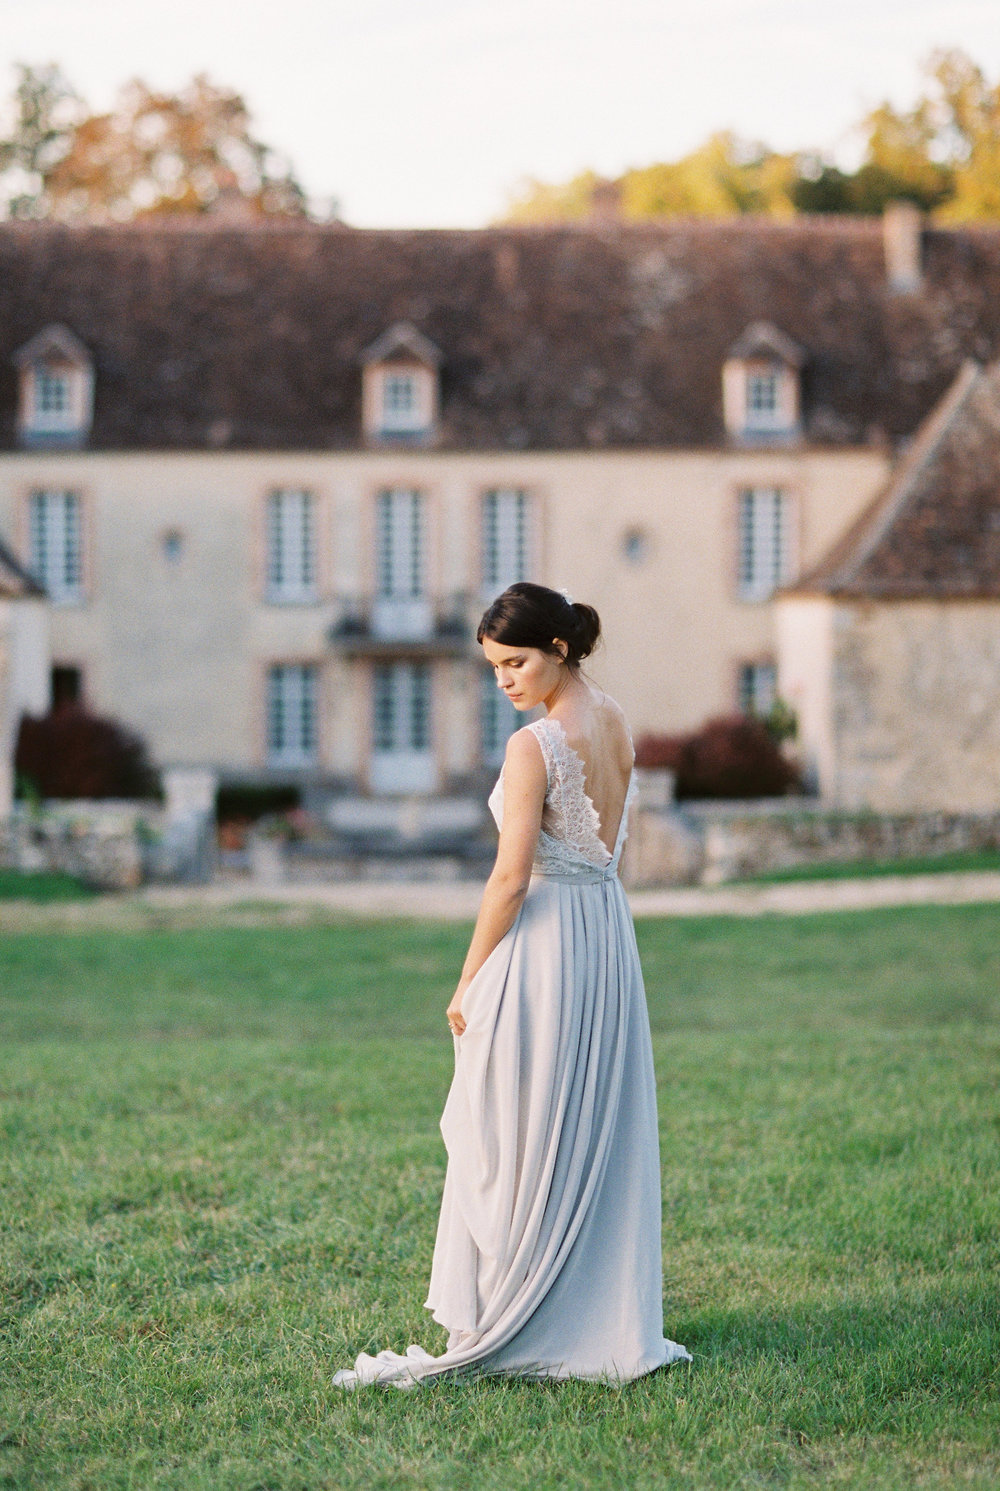 Bride wearing custom blue wedding gown by MoniRose Bespoke Gowns at her destination French chateau wedding in Burgundy, France